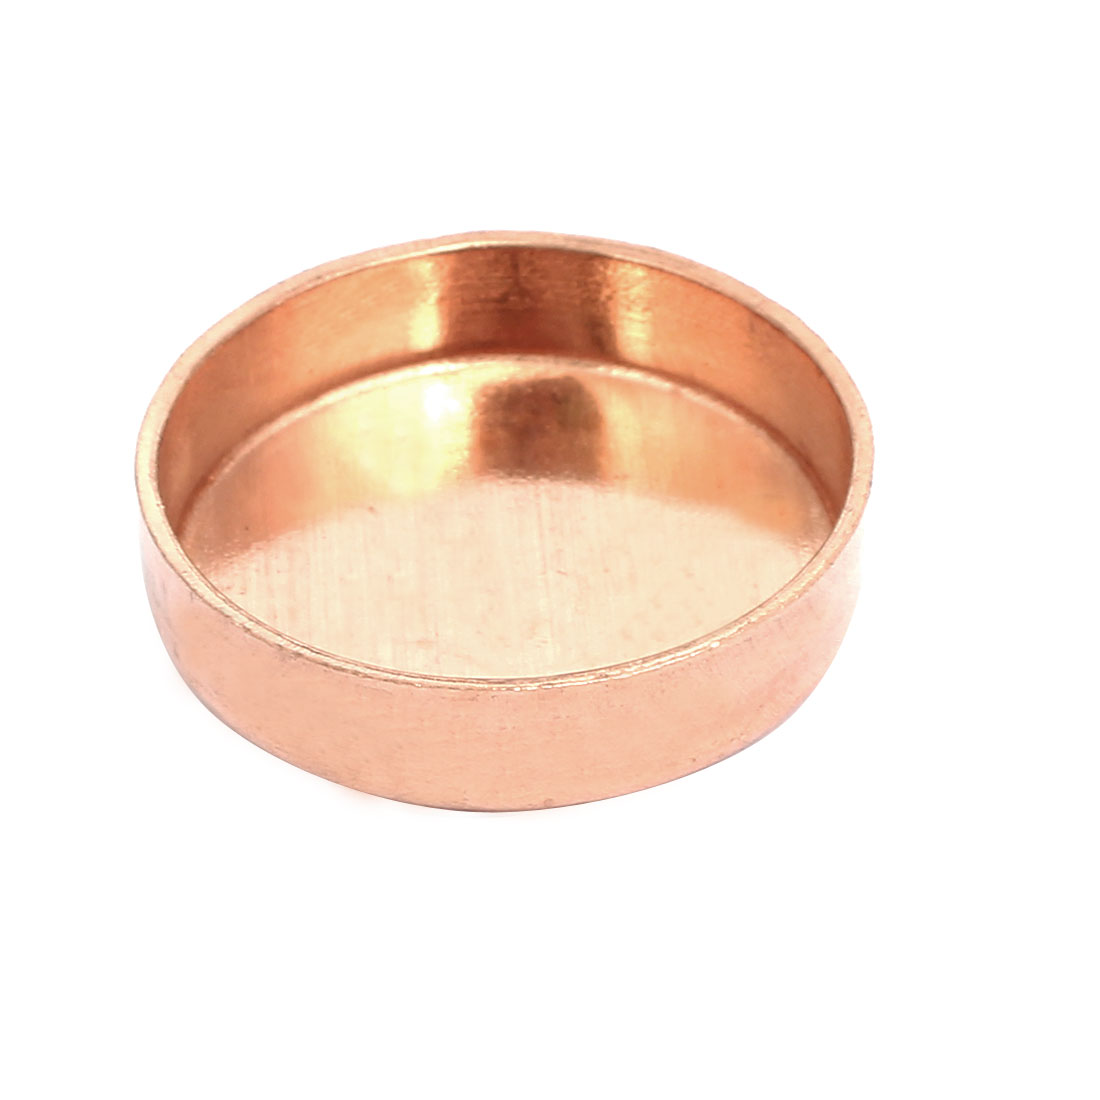 32mm Inner Dia 1.5mm Thickness Copper Pipe End Cap Cover Plumbing Fitting